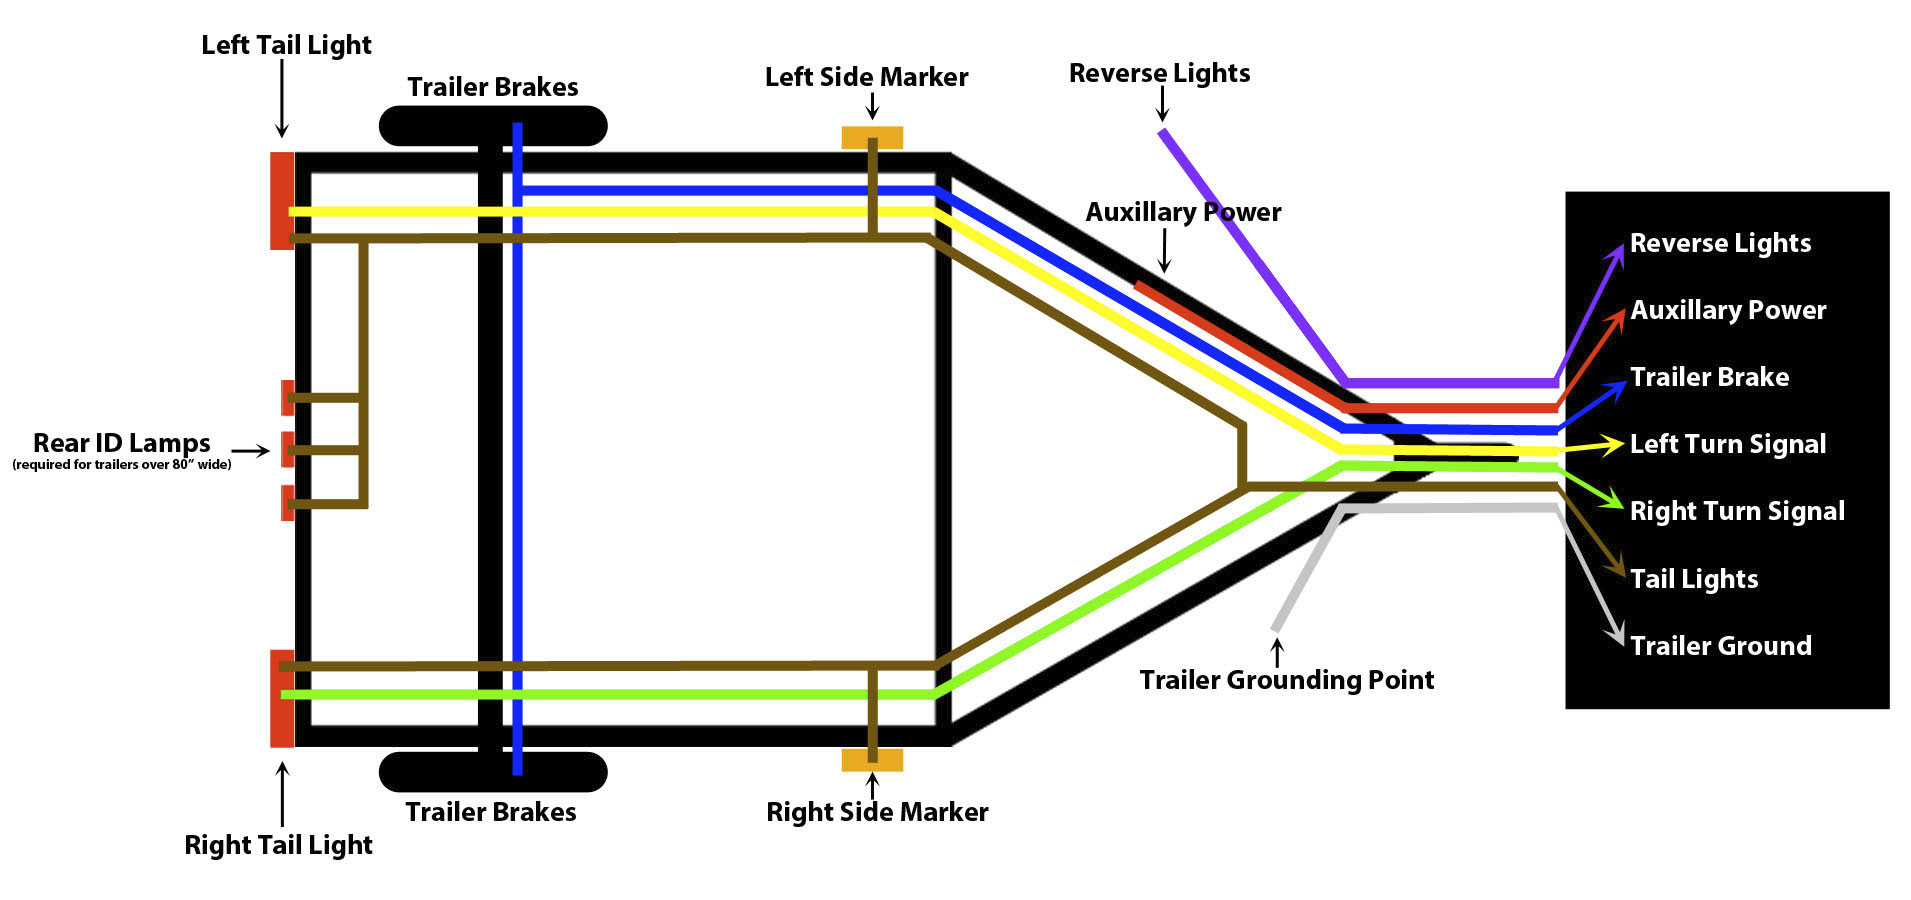 How To Wire Trailer Lights - Trailer Wiring Guide & Videos - Trailer Lights Wiring Diagram